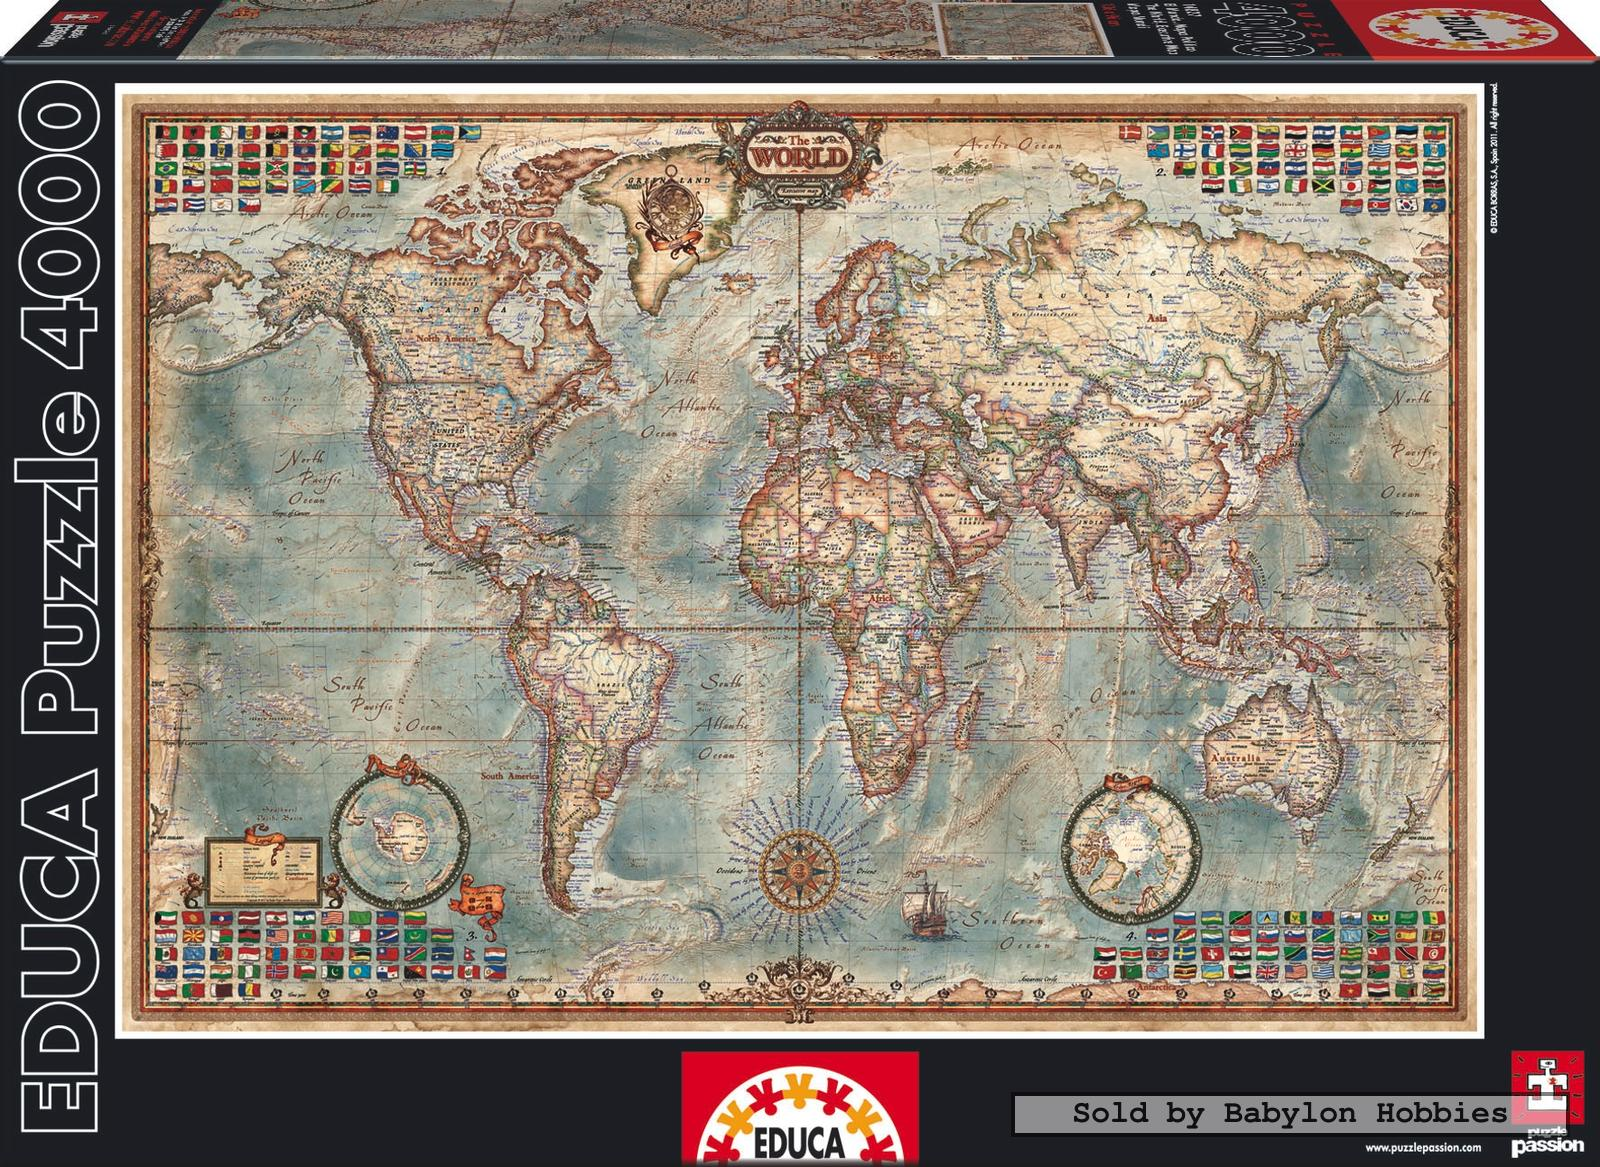 4000 pcs jigsaw puzzle map of the world maps educa 14827 ebay. Black Bedroom Furniture Sets. Home Design Ideas